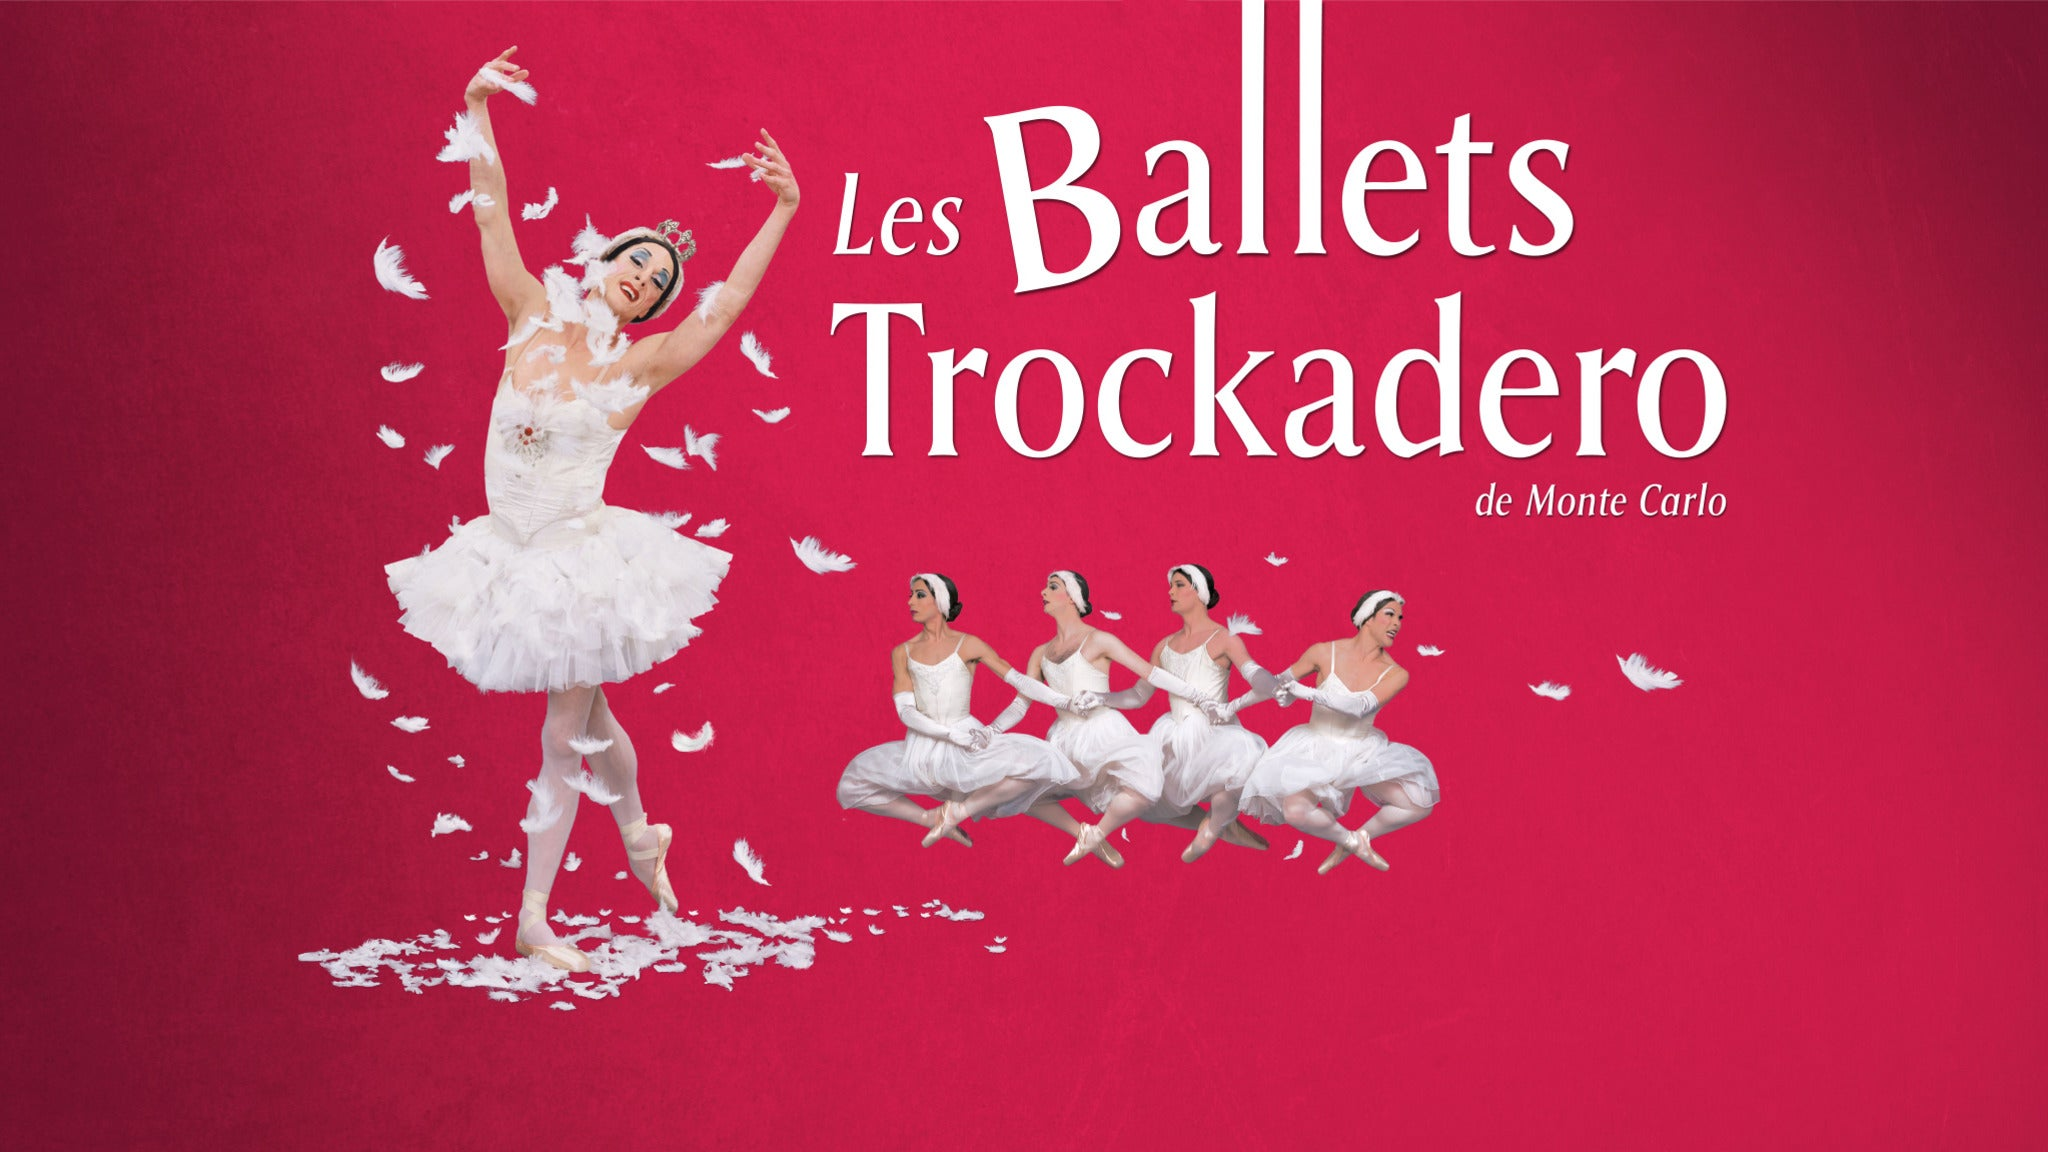 Les Ballets Trockadero De Monte Carlo at Merrill Auditorium